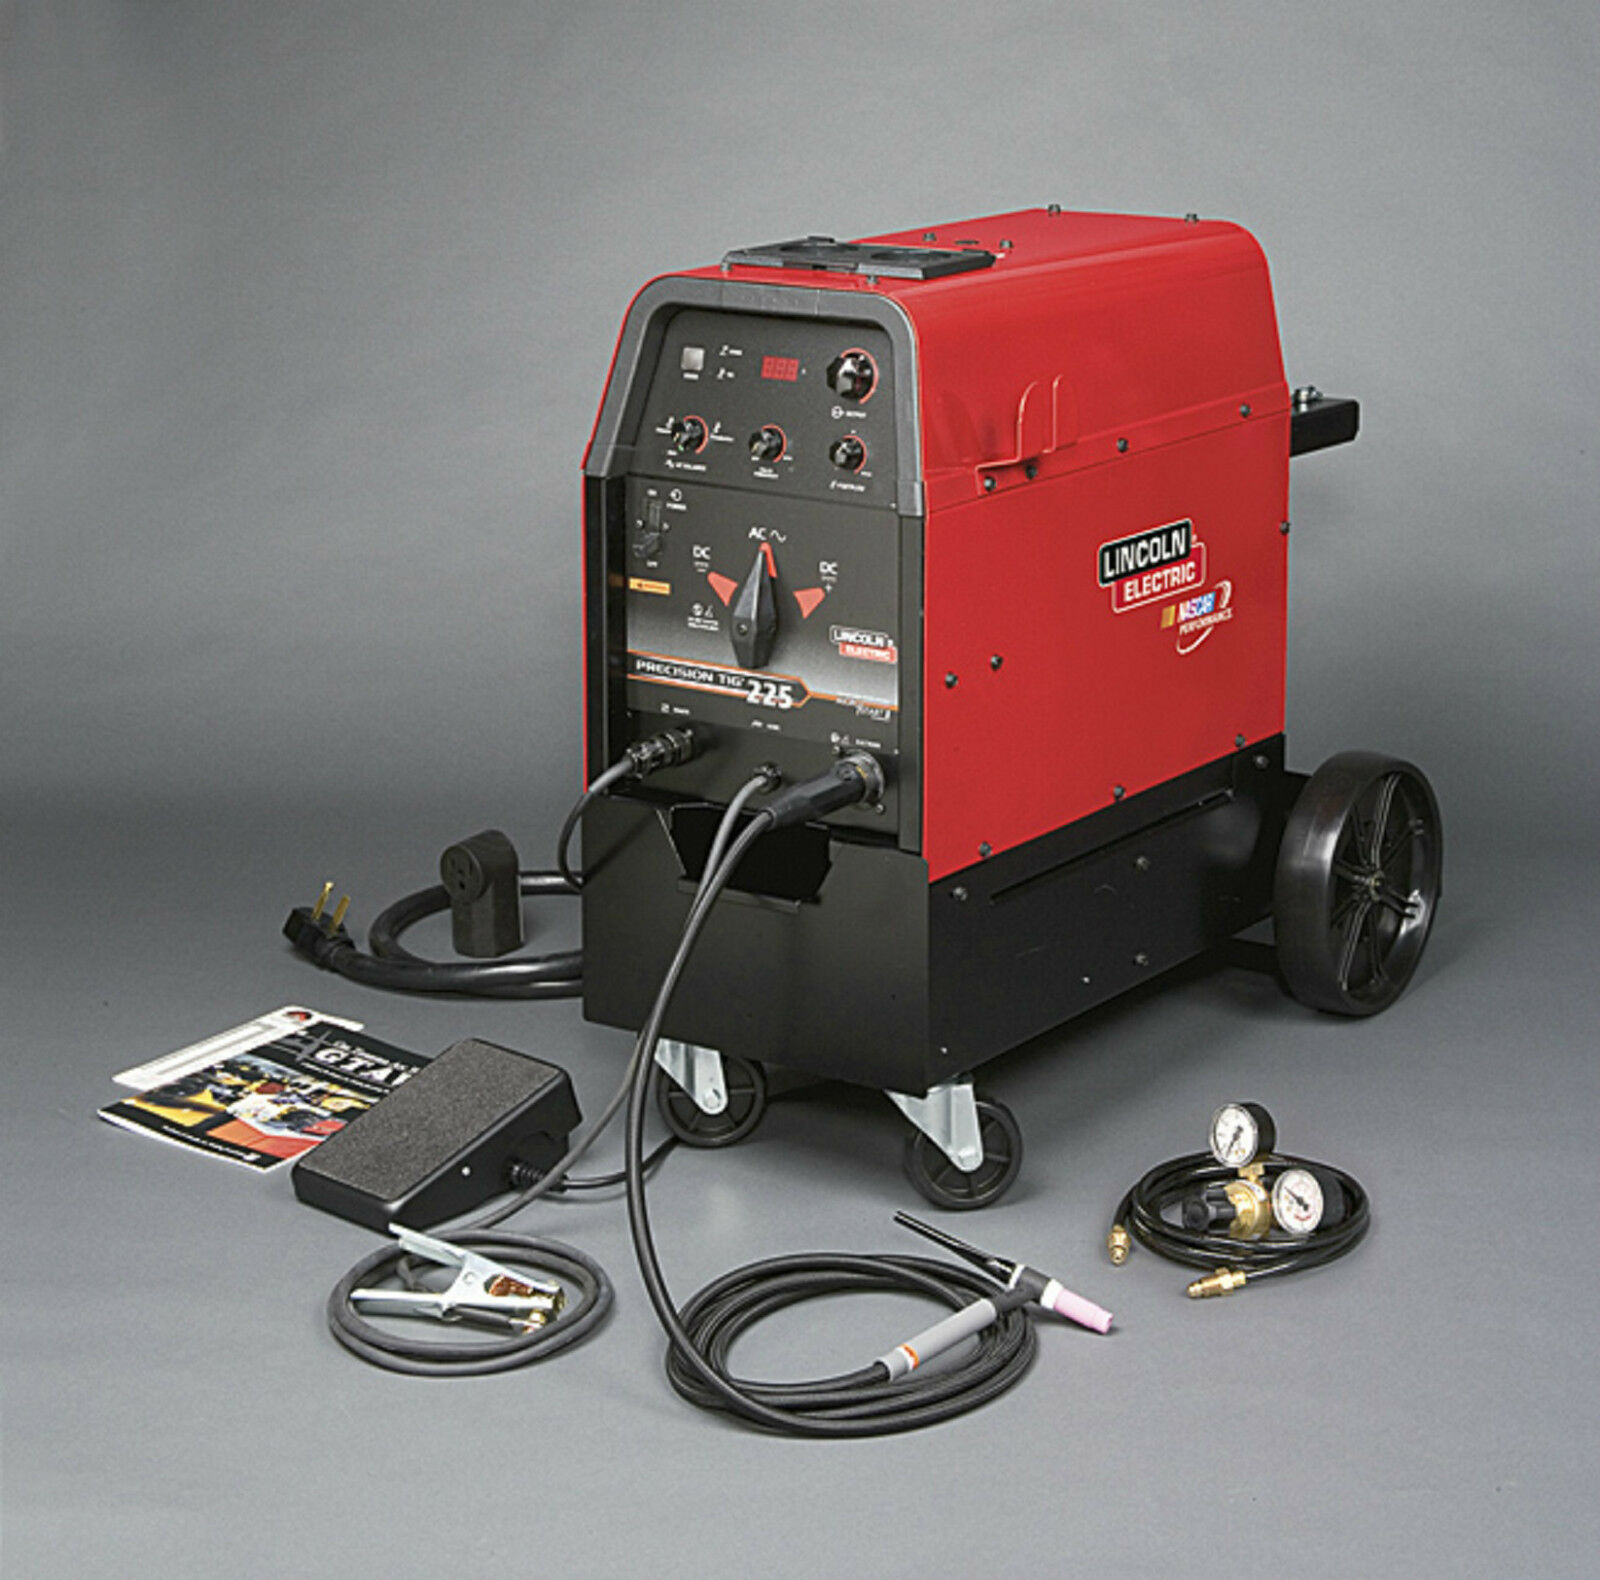 LINCOLN PRECISION TIG 225 Ready Pak With Cart K2535-2 - $3,094.00 ...